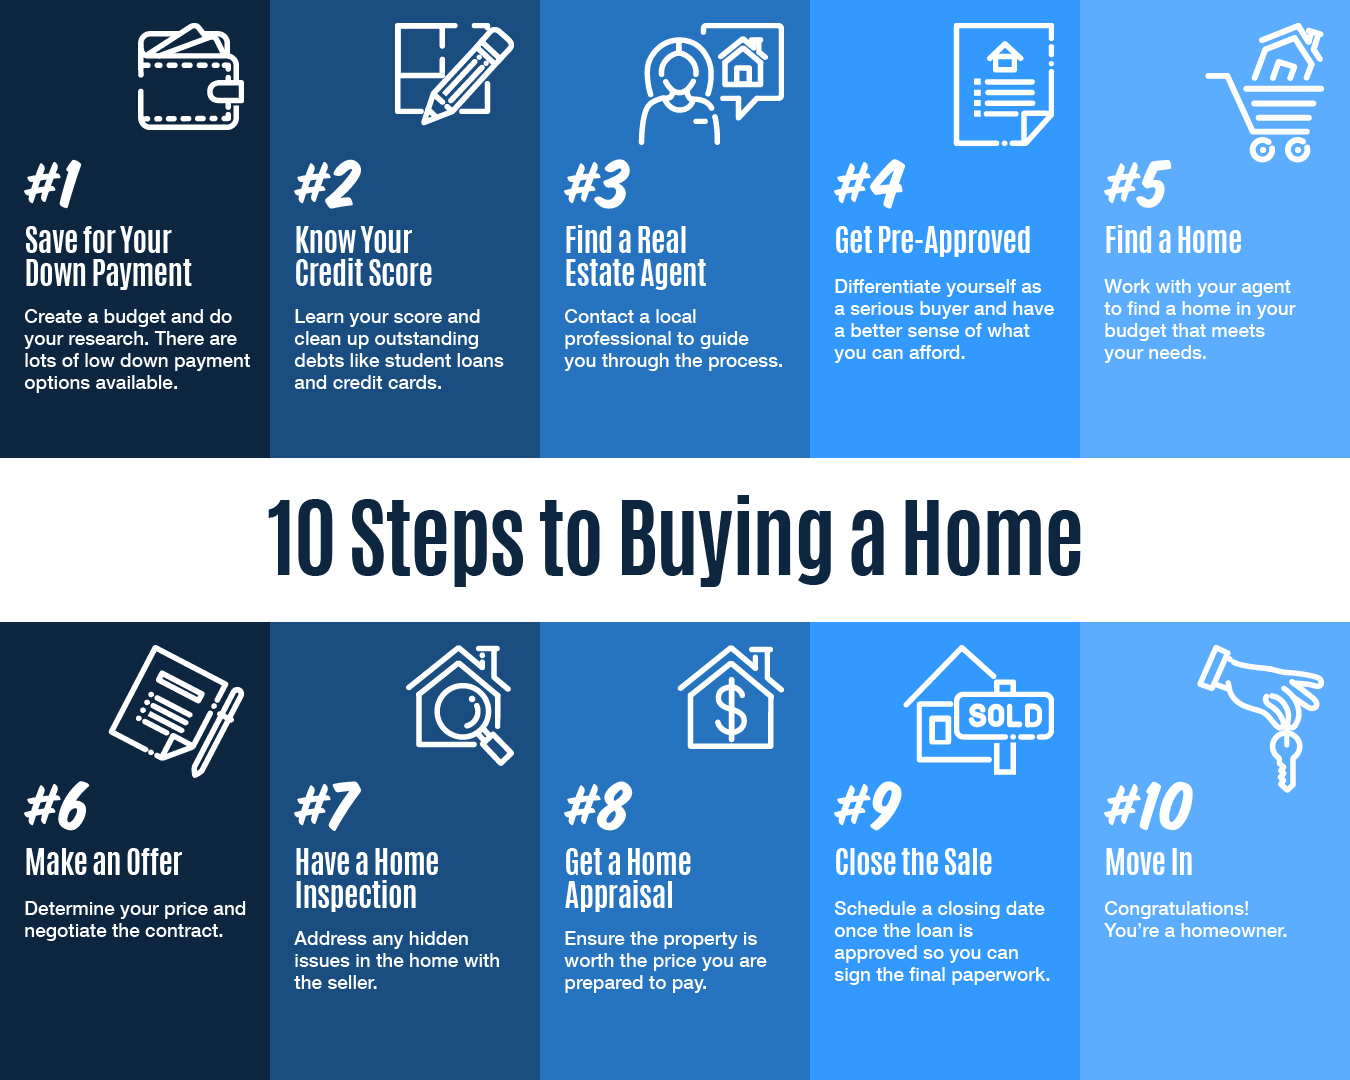 10 Steps to buying a home - quick look